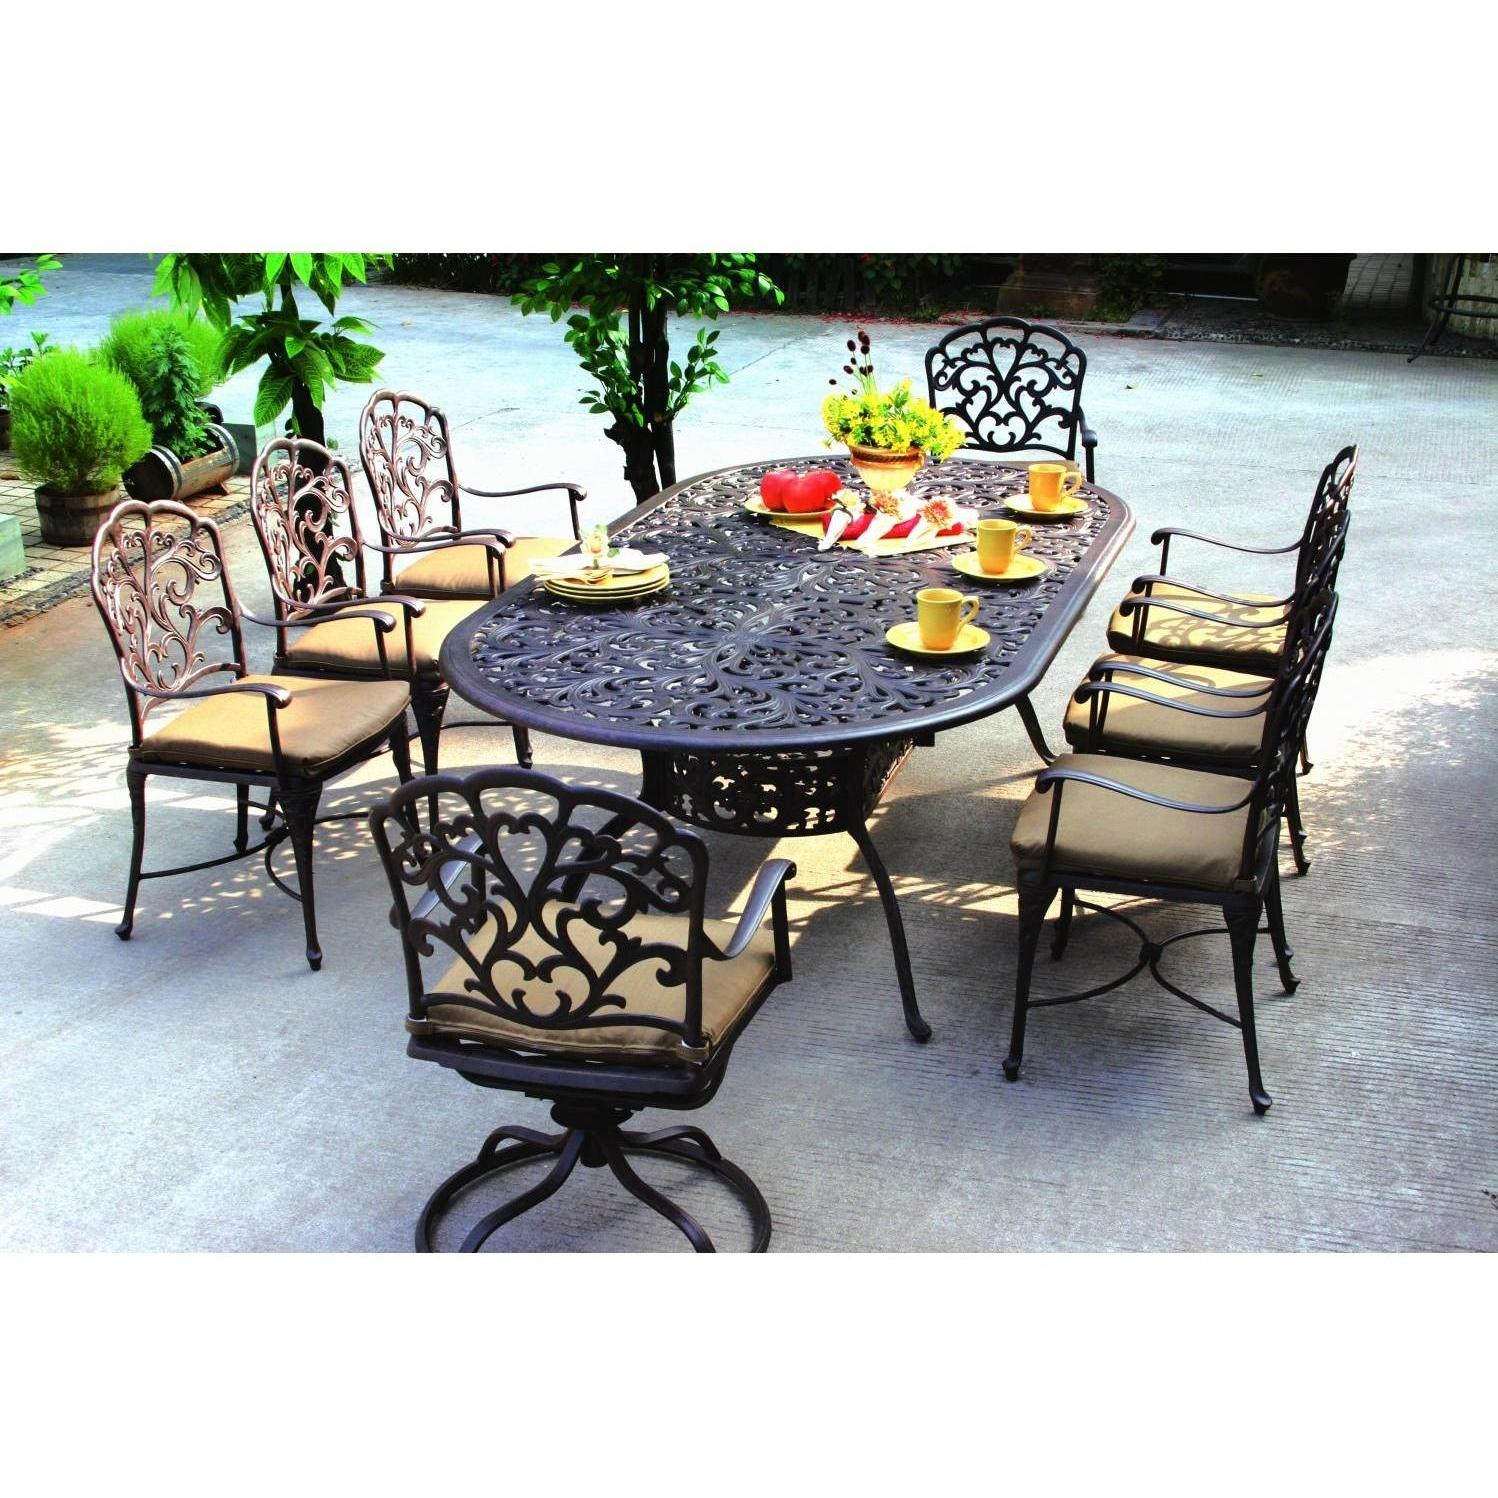 patio dining sets for 8 photo - 3